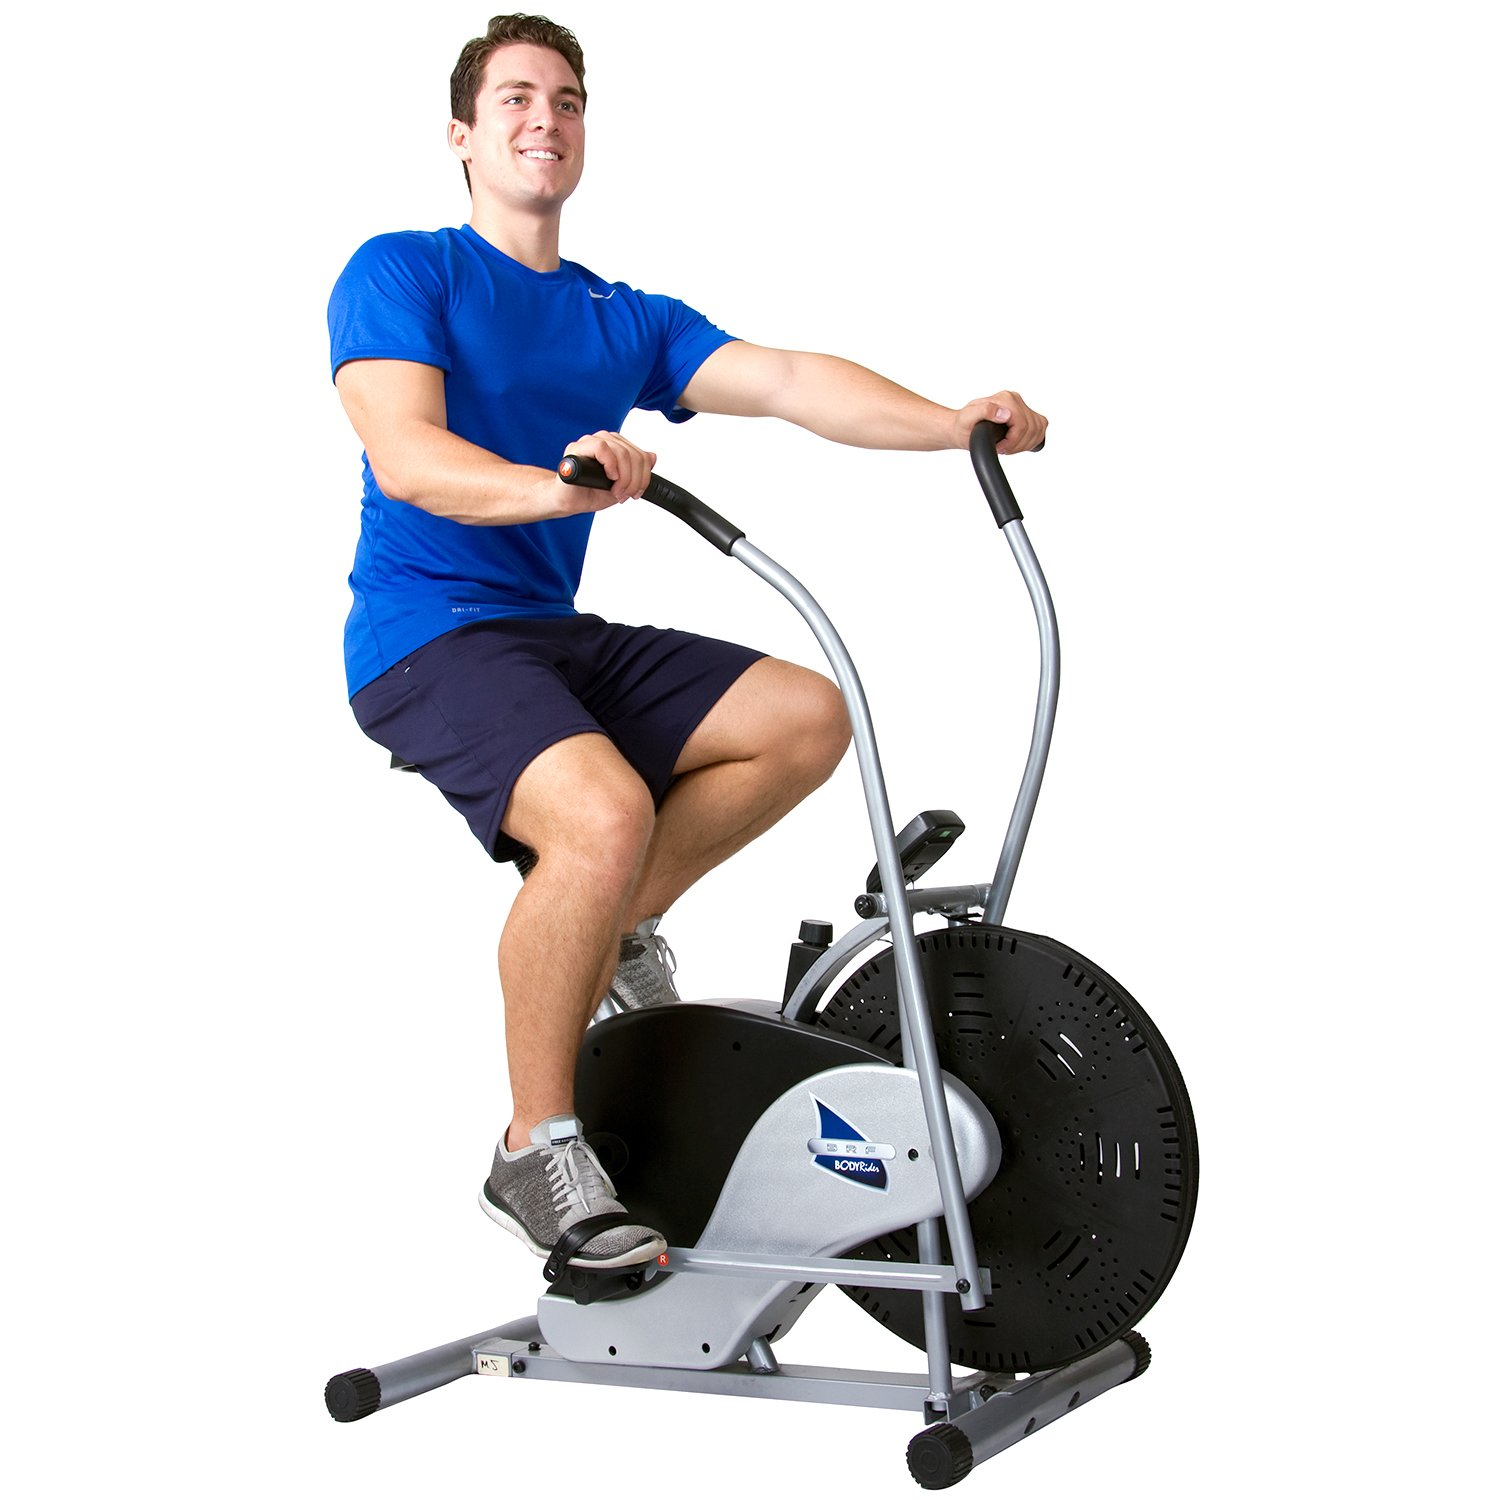 Body Rider Exercise Upright Fan Bike (with UPDATED Softer Seat) Stationary Fitness/Adjustable Seat BRF700 by Body Rider (Image #2)